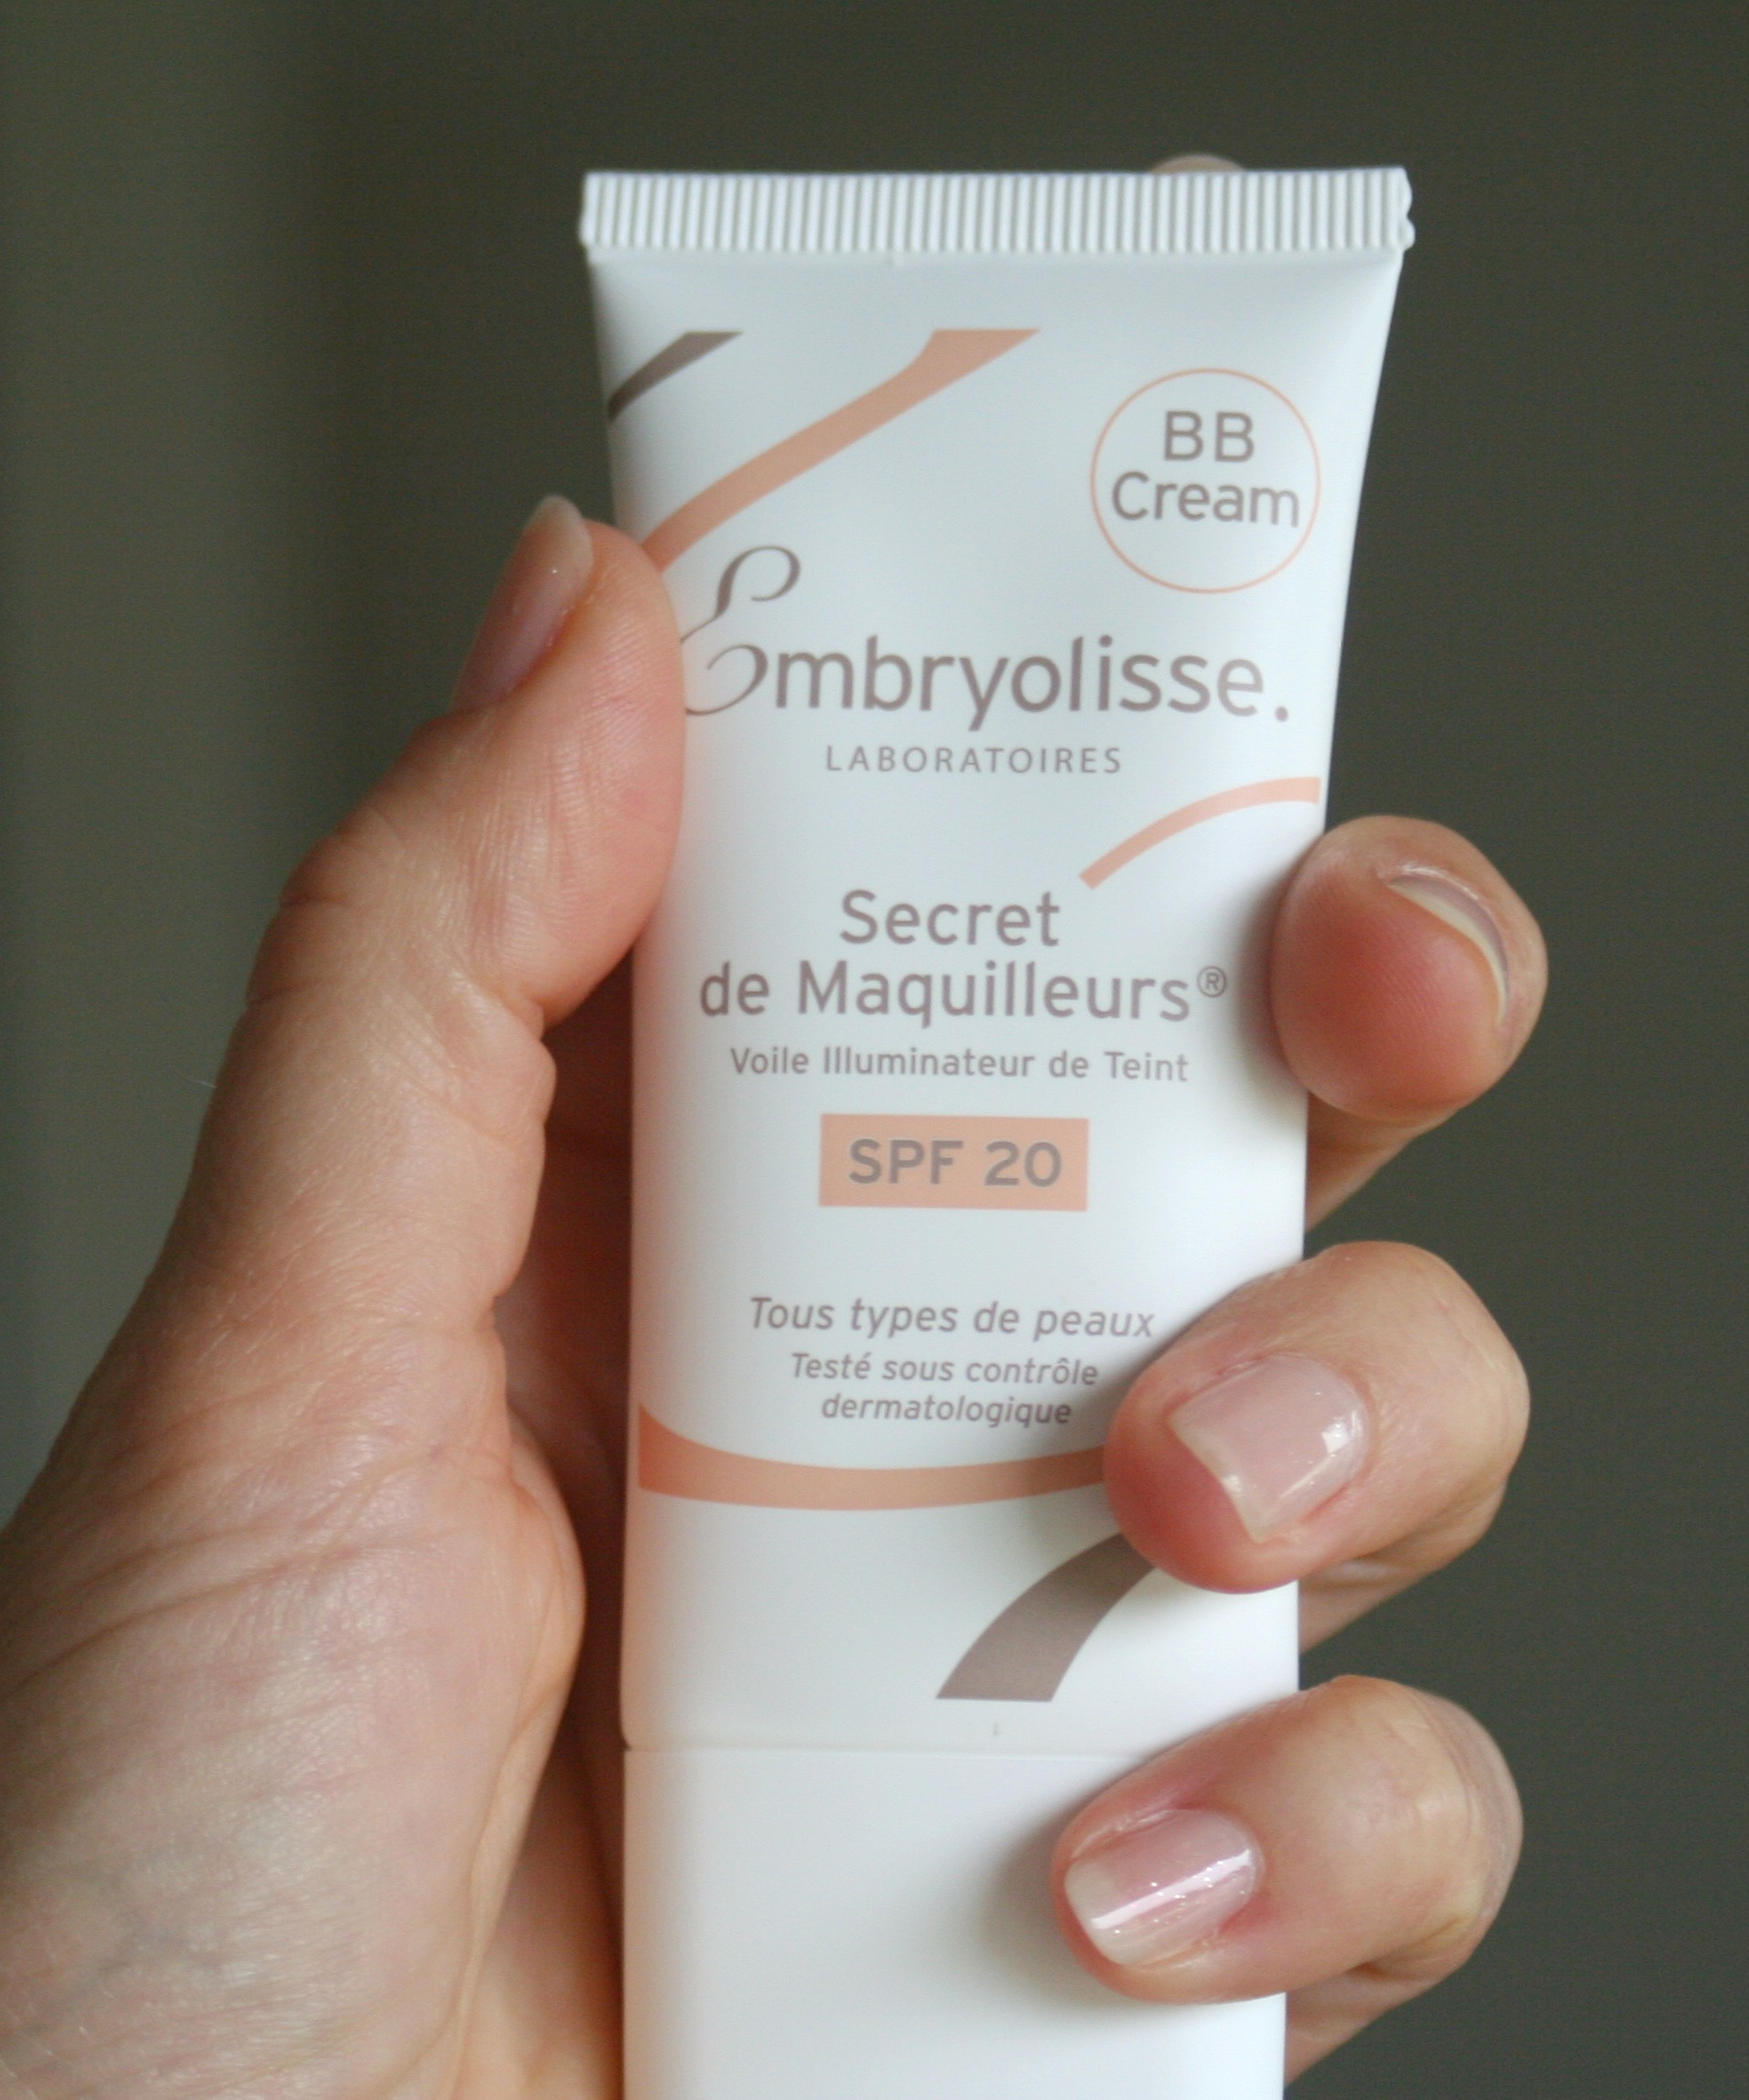 Embryolisse Artist Secret BB Cream with 'self adjusting pigments'